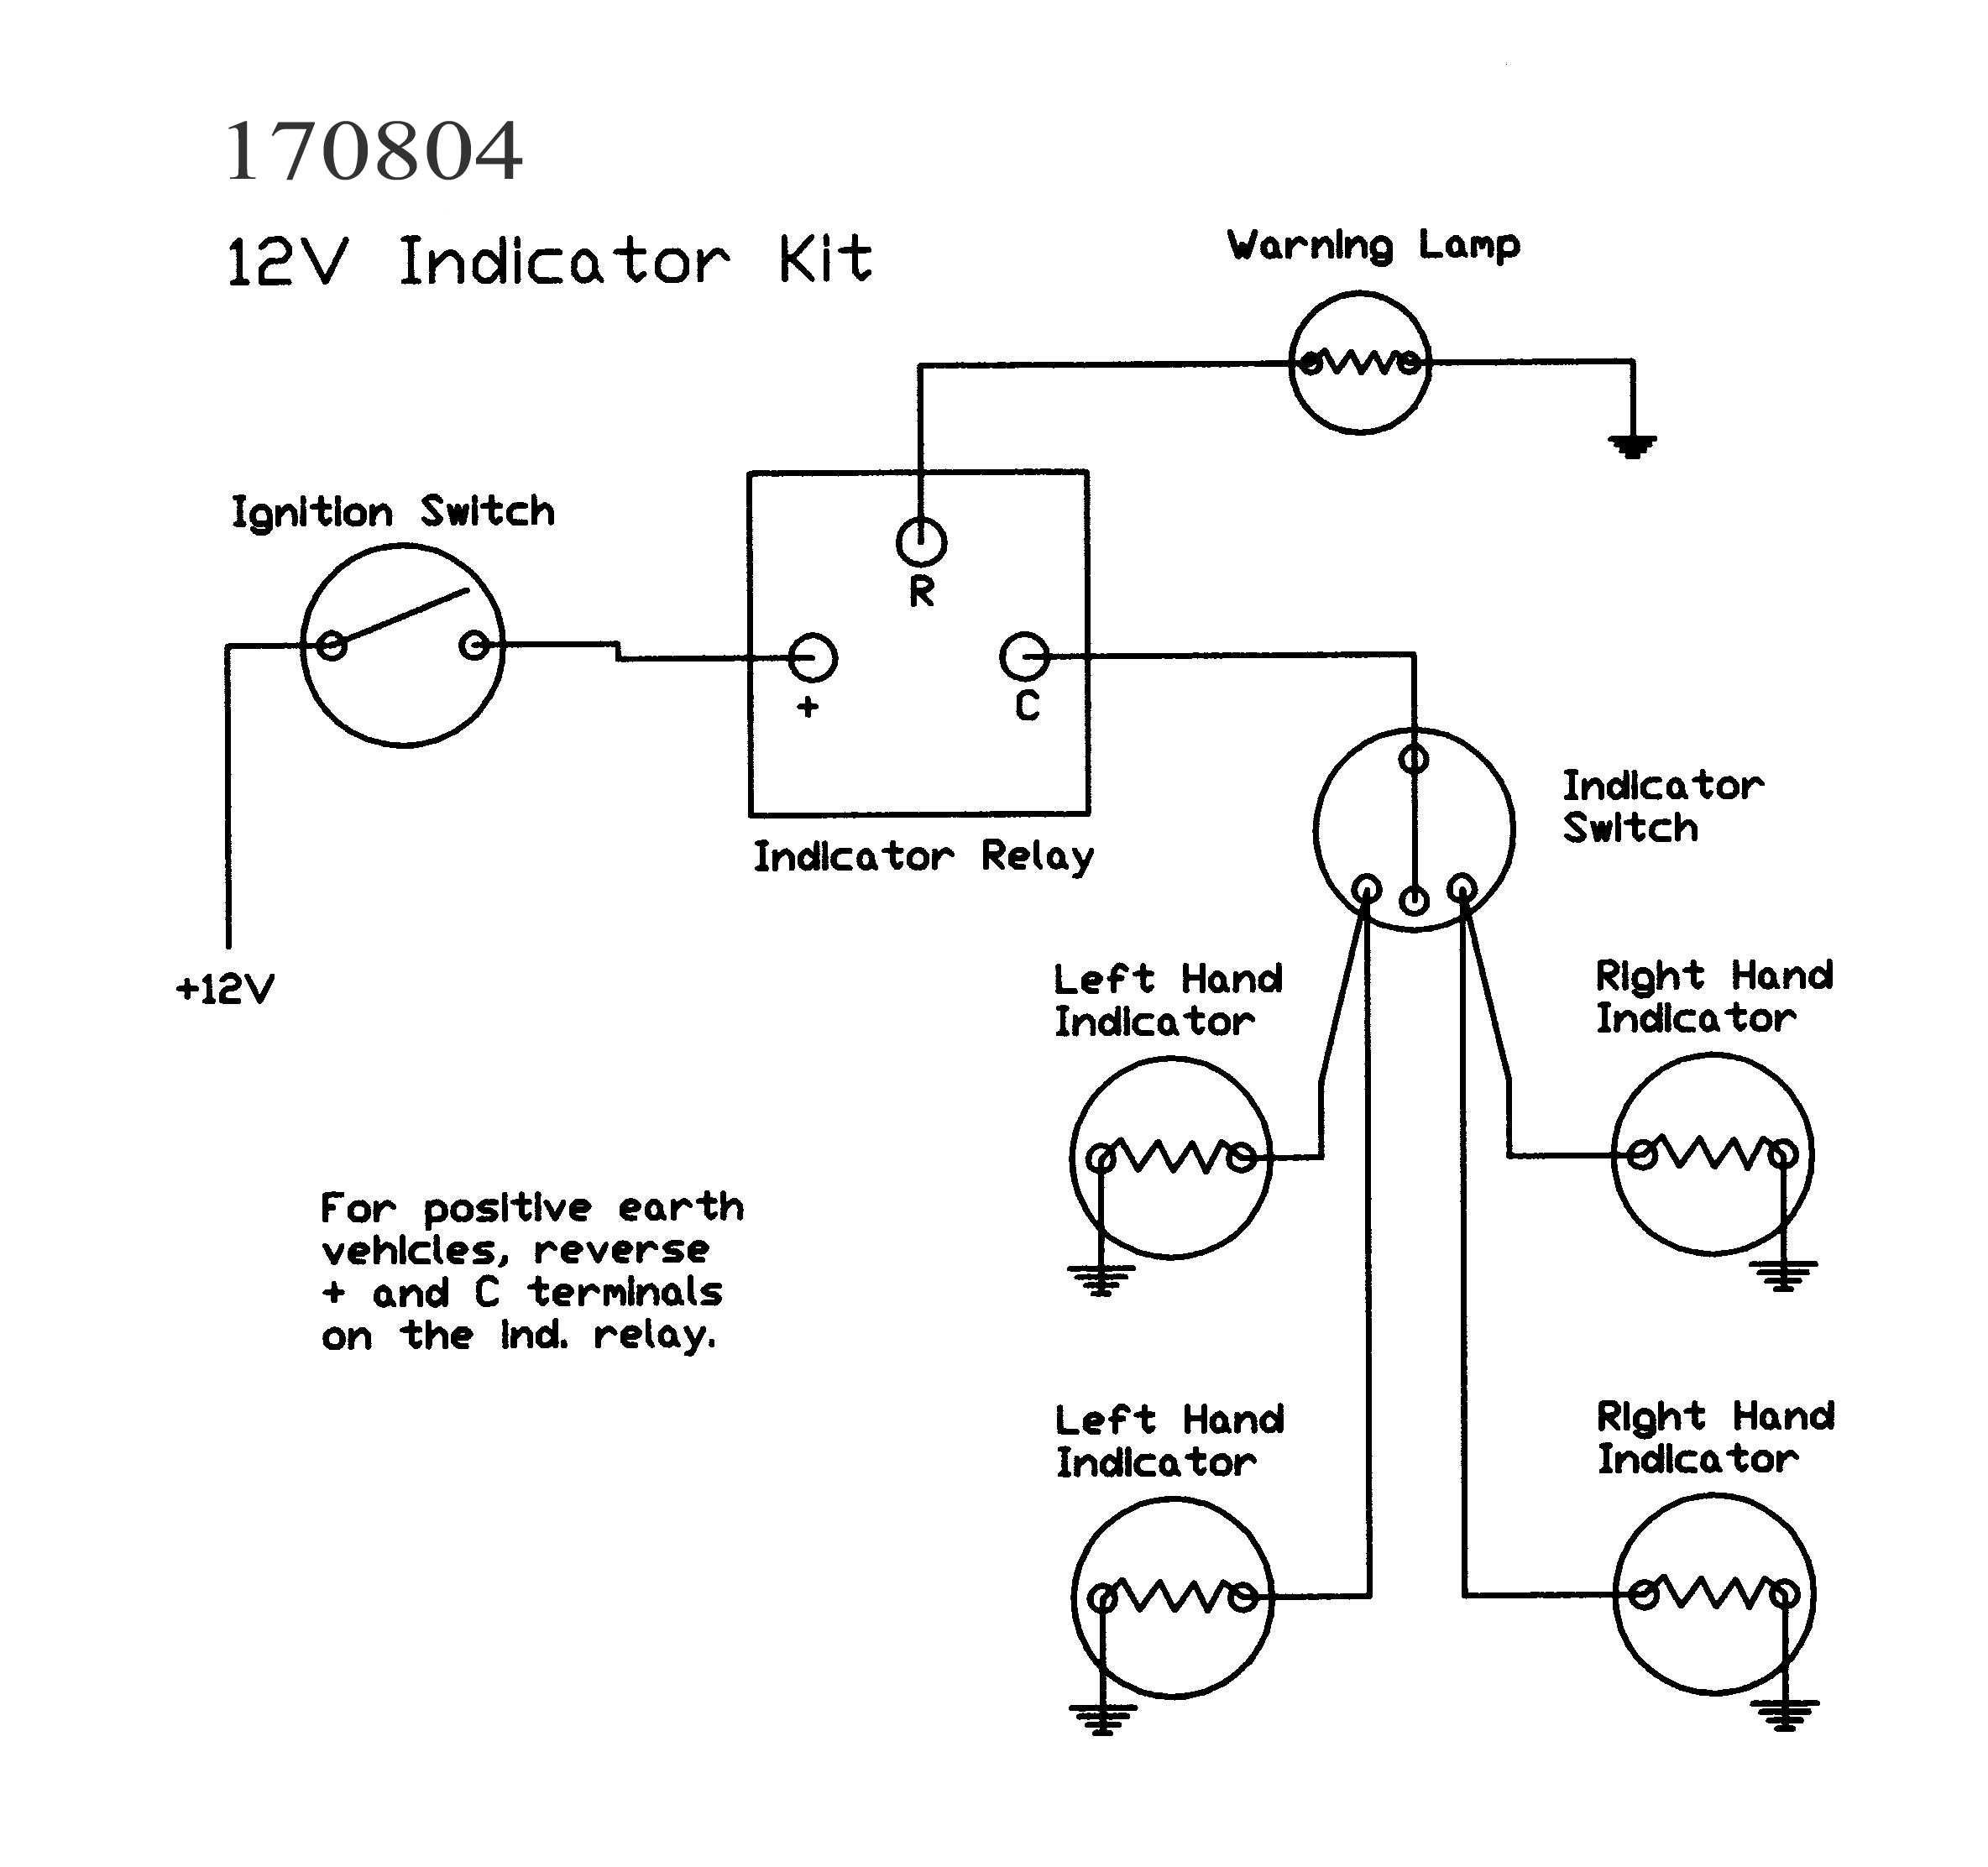 170804_(12v)_schematic indicator kits (without lamps) car flasher wiring diagram at creativeand.co